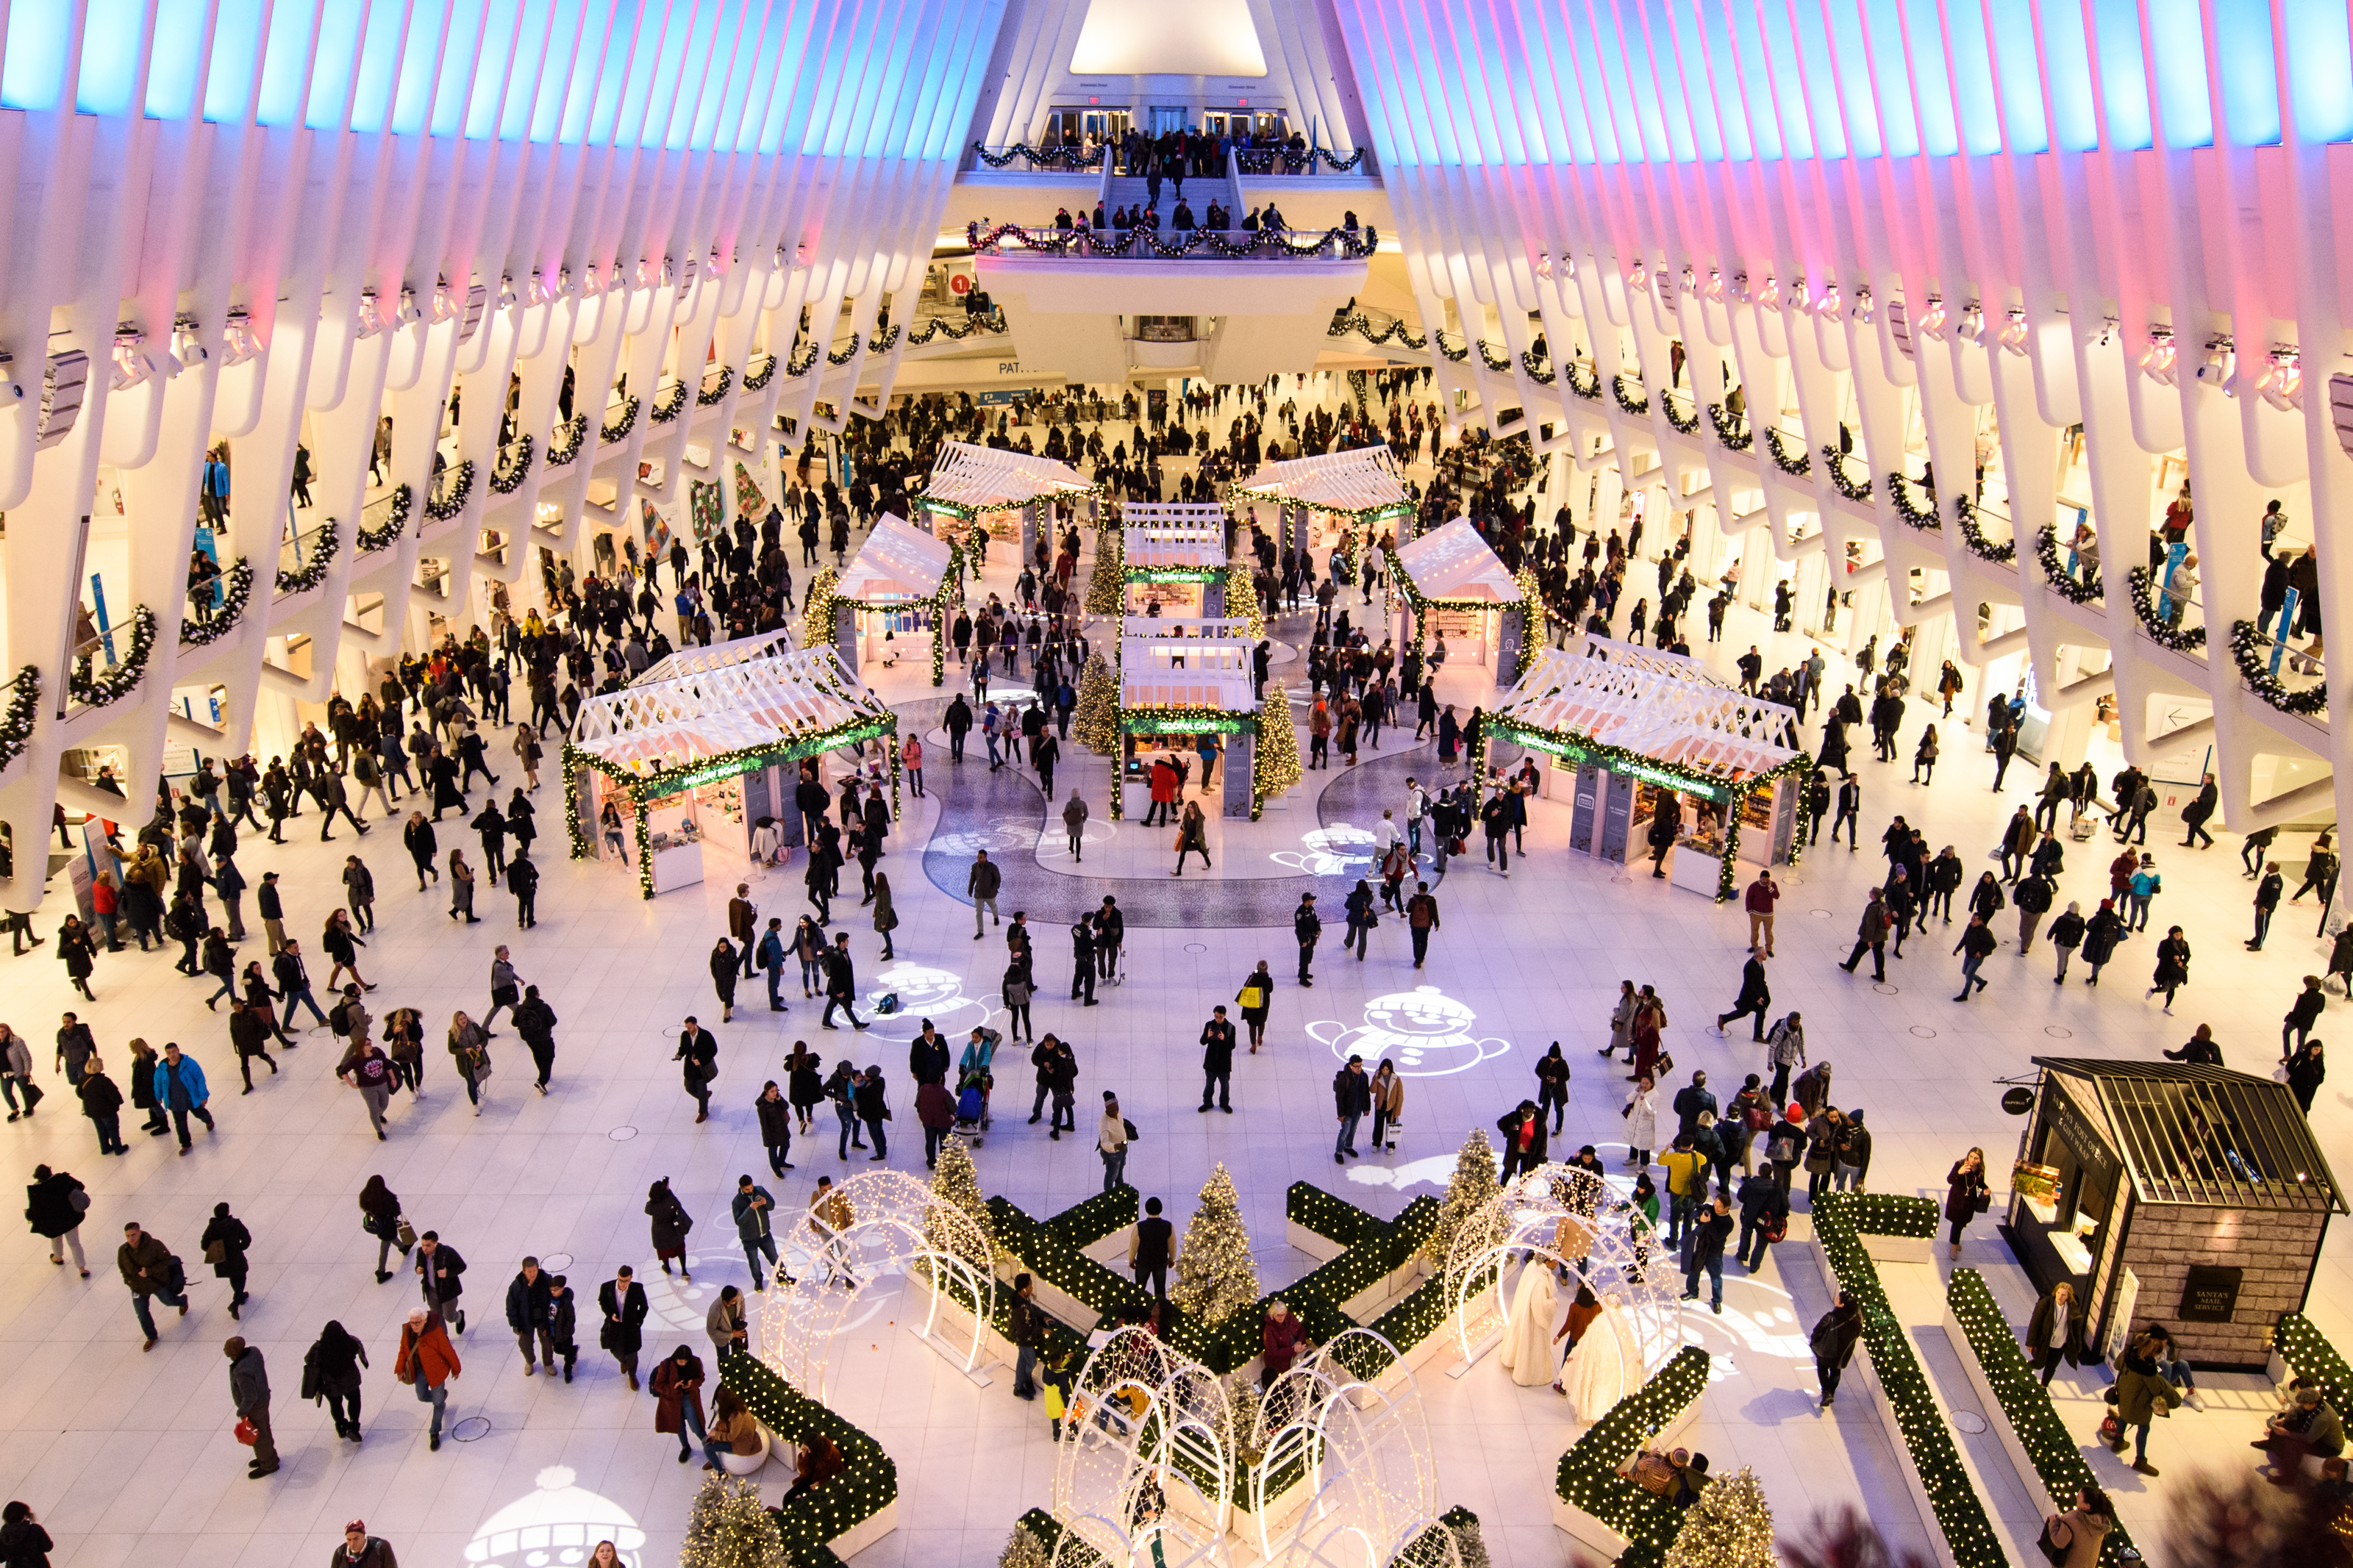 Market at Westfield holiday events in NYC